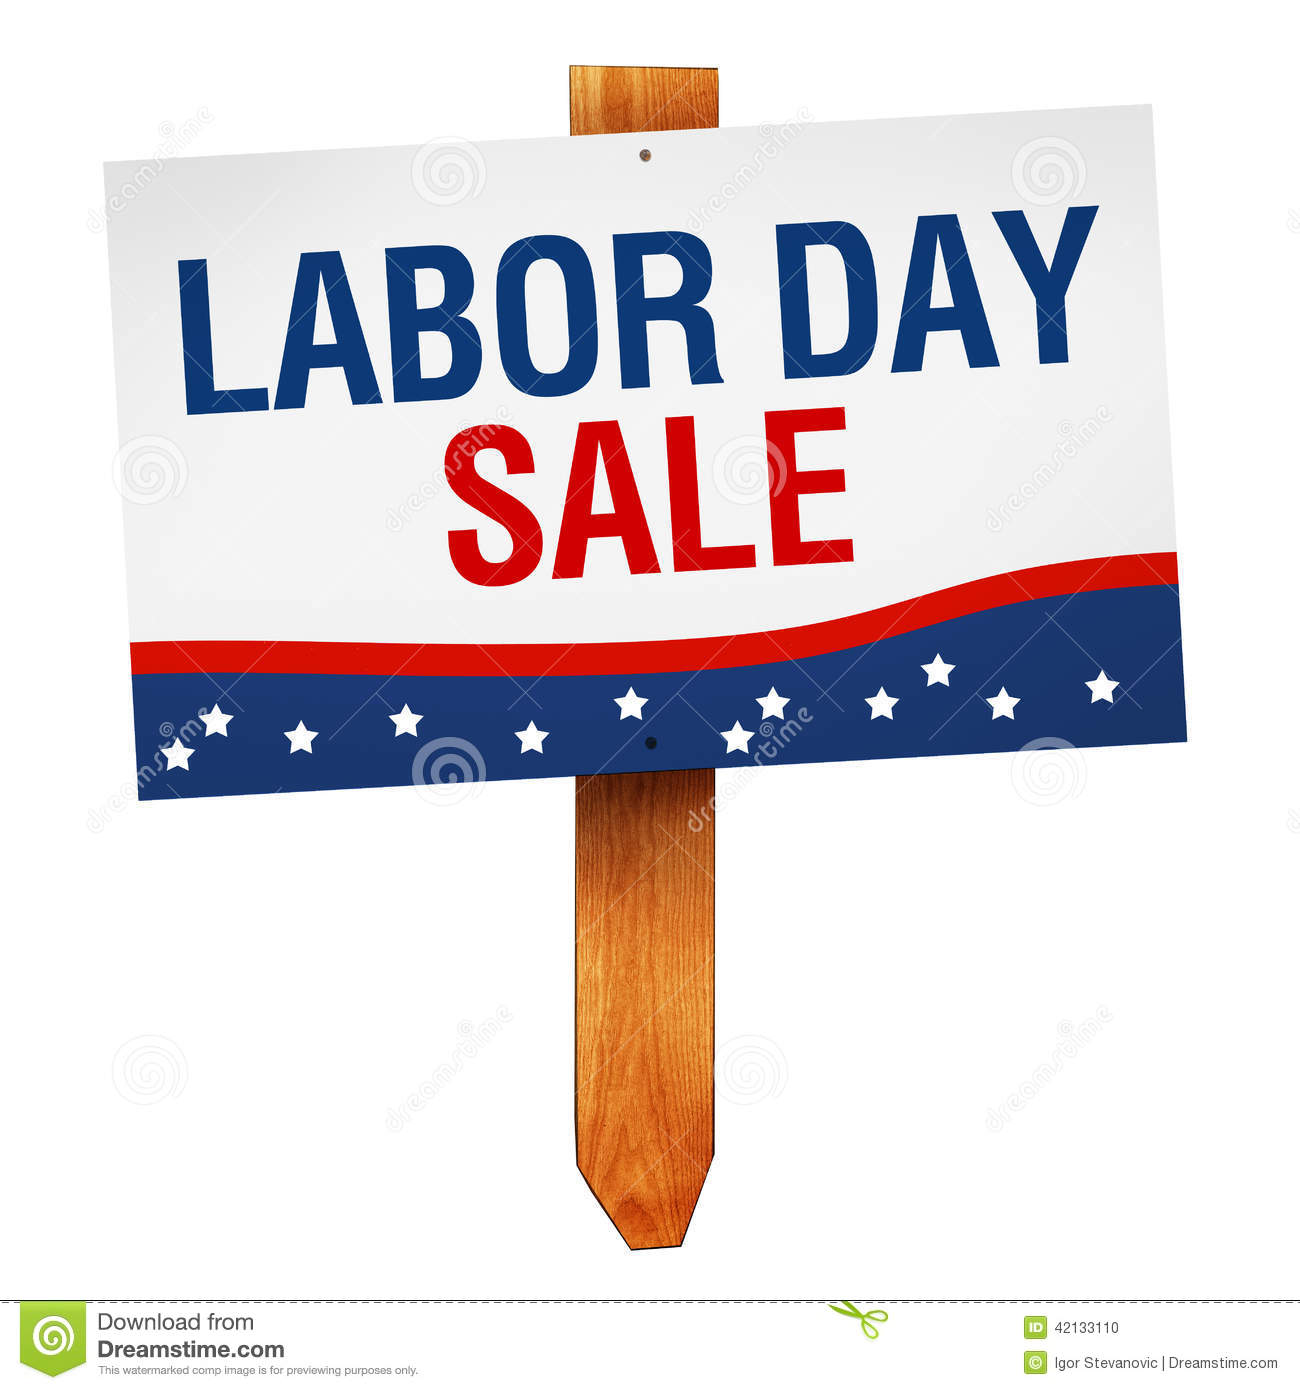 Labor Day Sale: Labor Day Sale Sign Isolated On White Background Stock